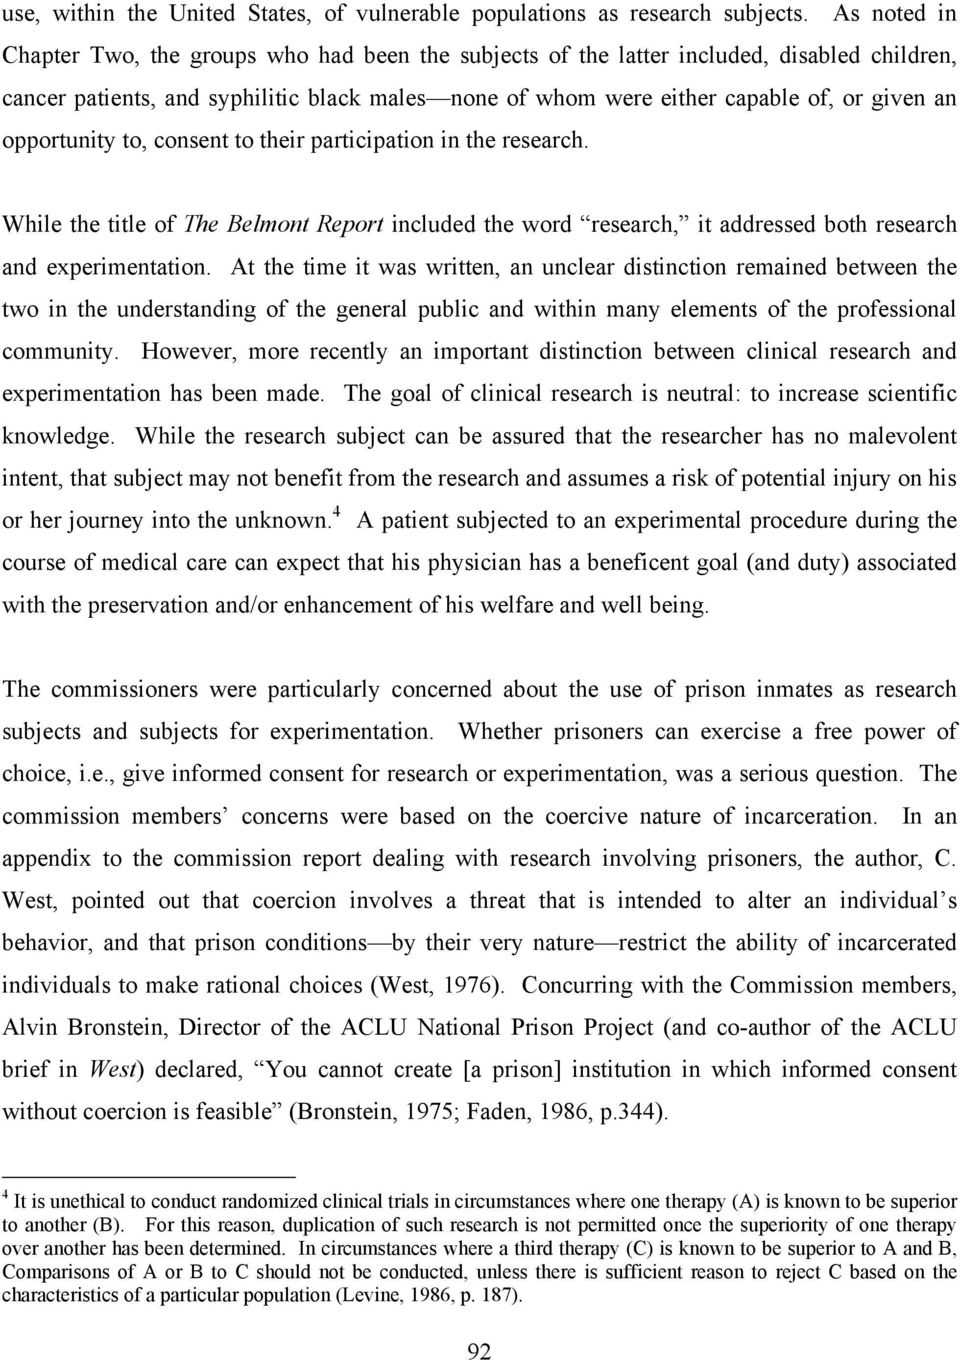 opportunity to, consent to their participation in the research. While the title of The Belmont Report included the word research, it addressed both research and experimentation.